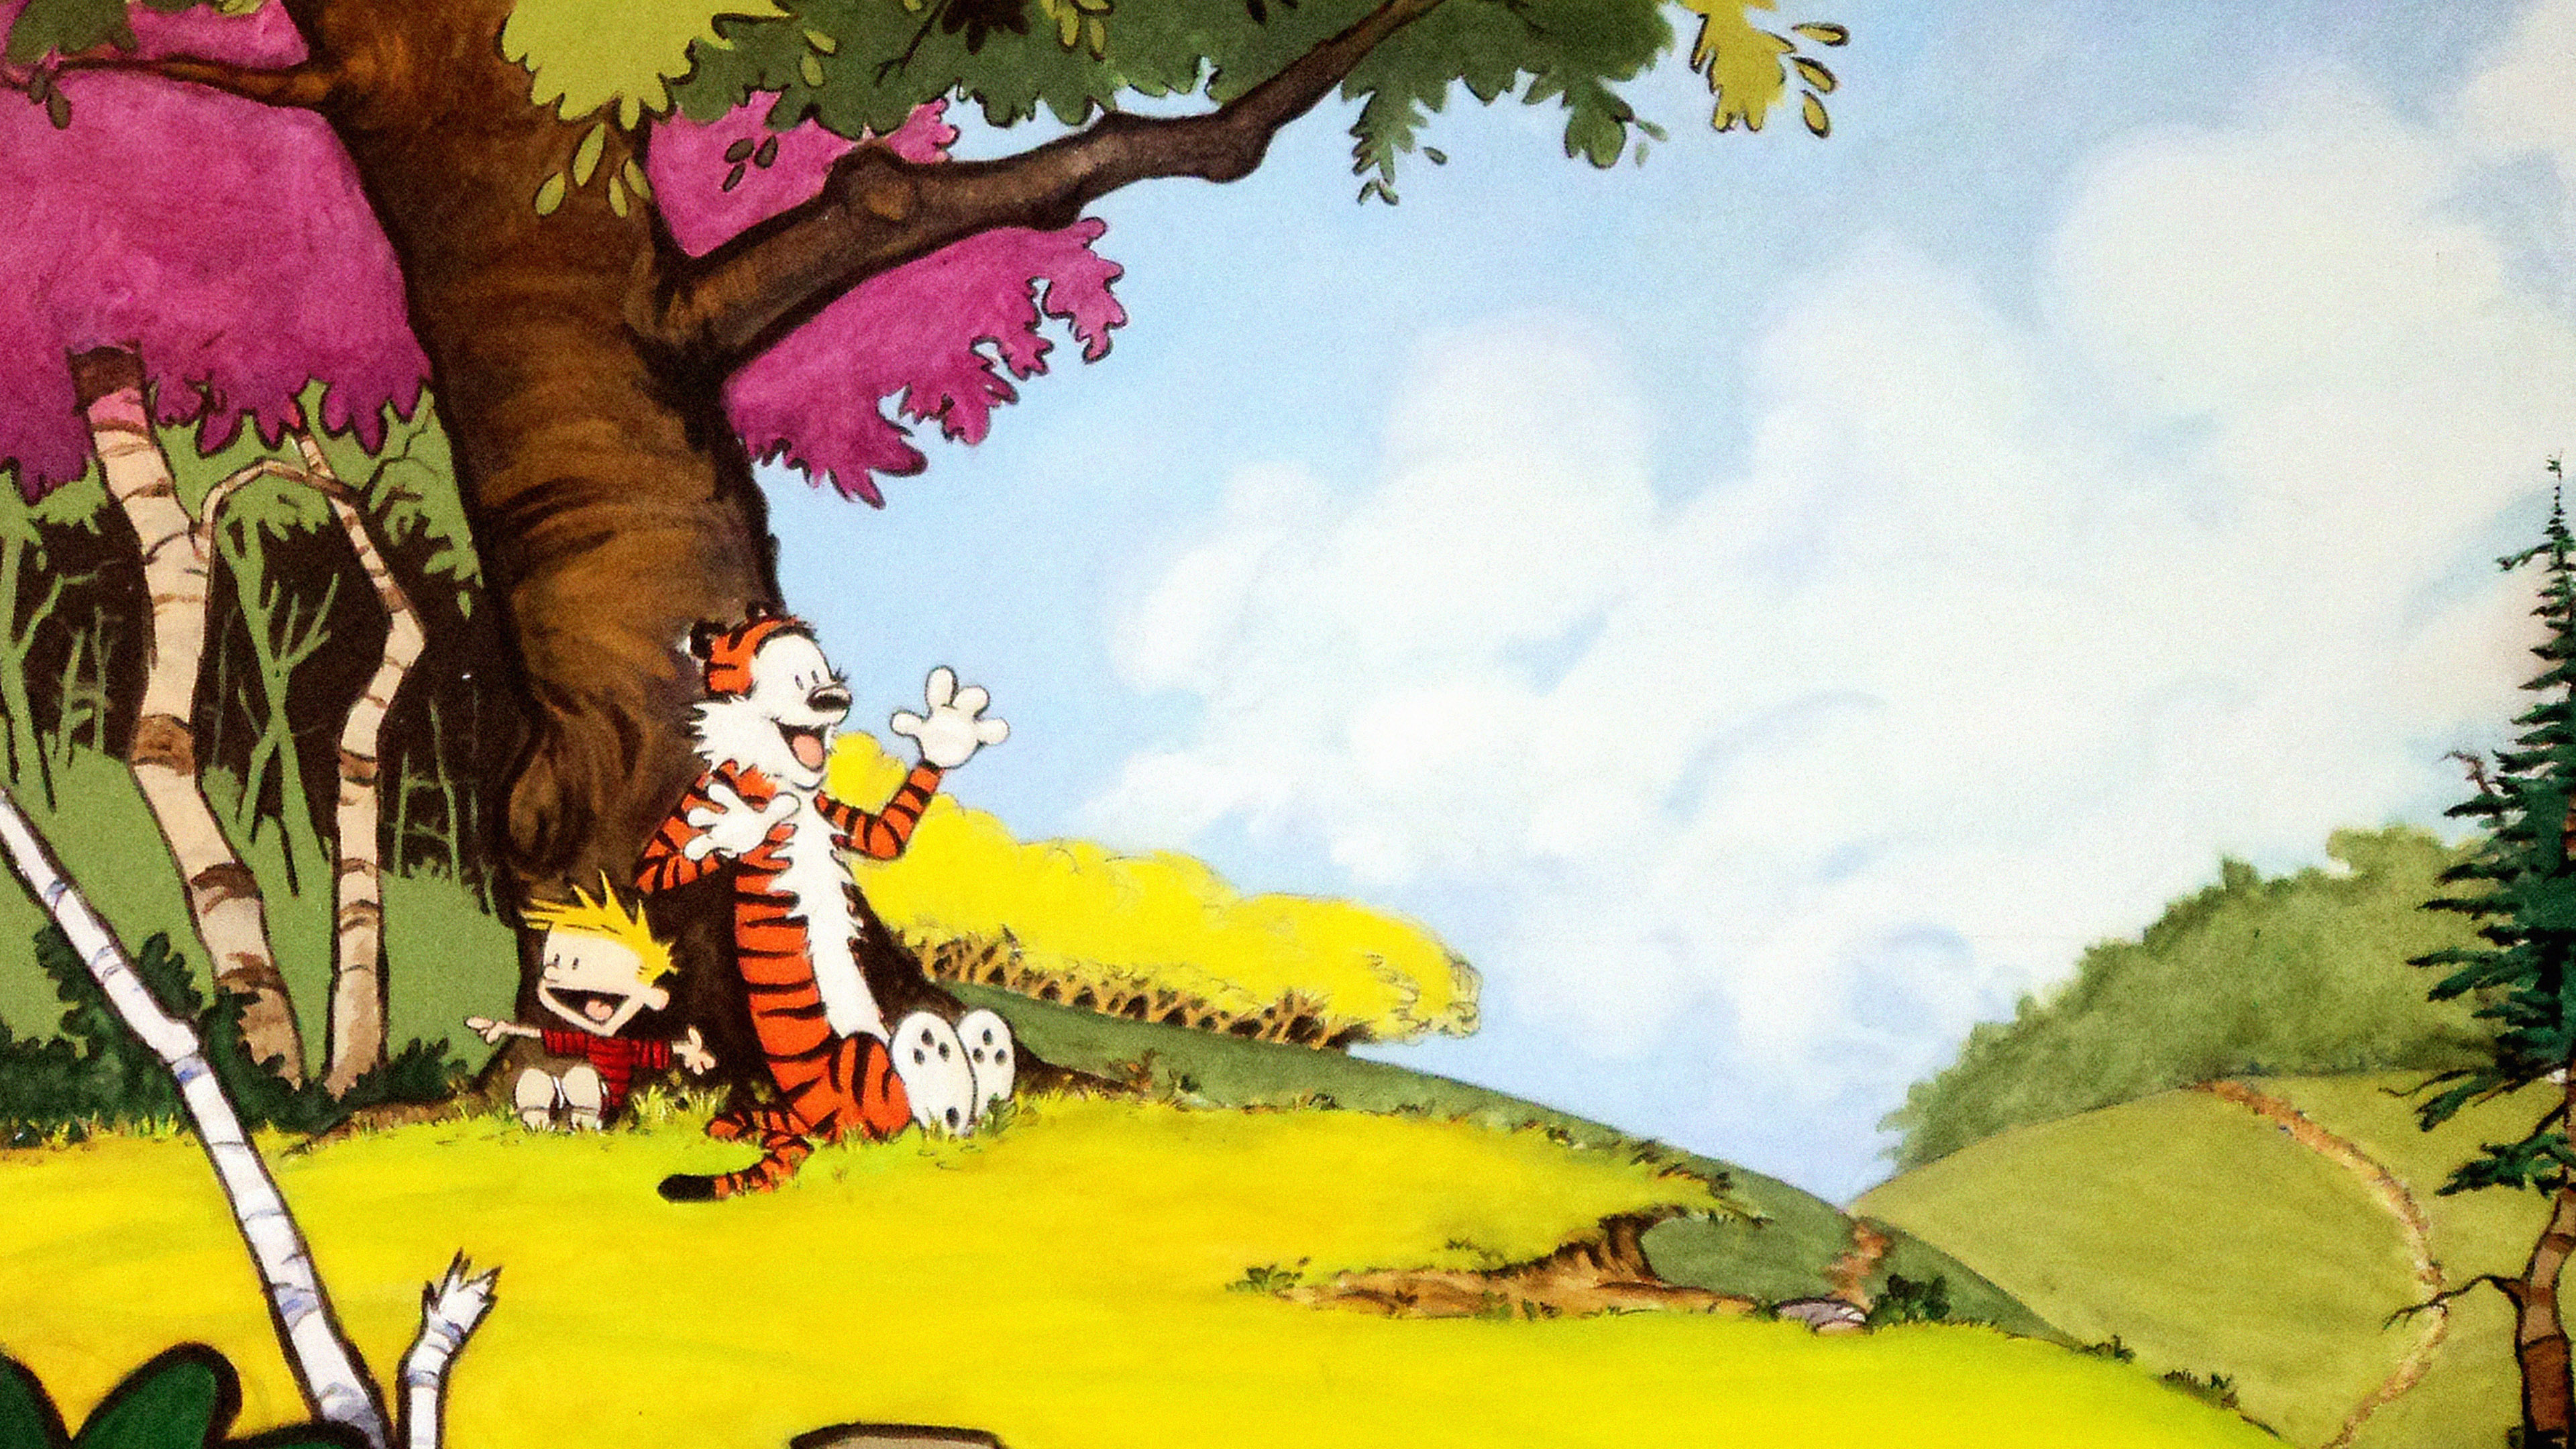 Wave Wallpaper Iphone X Ac48 Wallpaper Calvin And Hobbes After Nap Papers Co